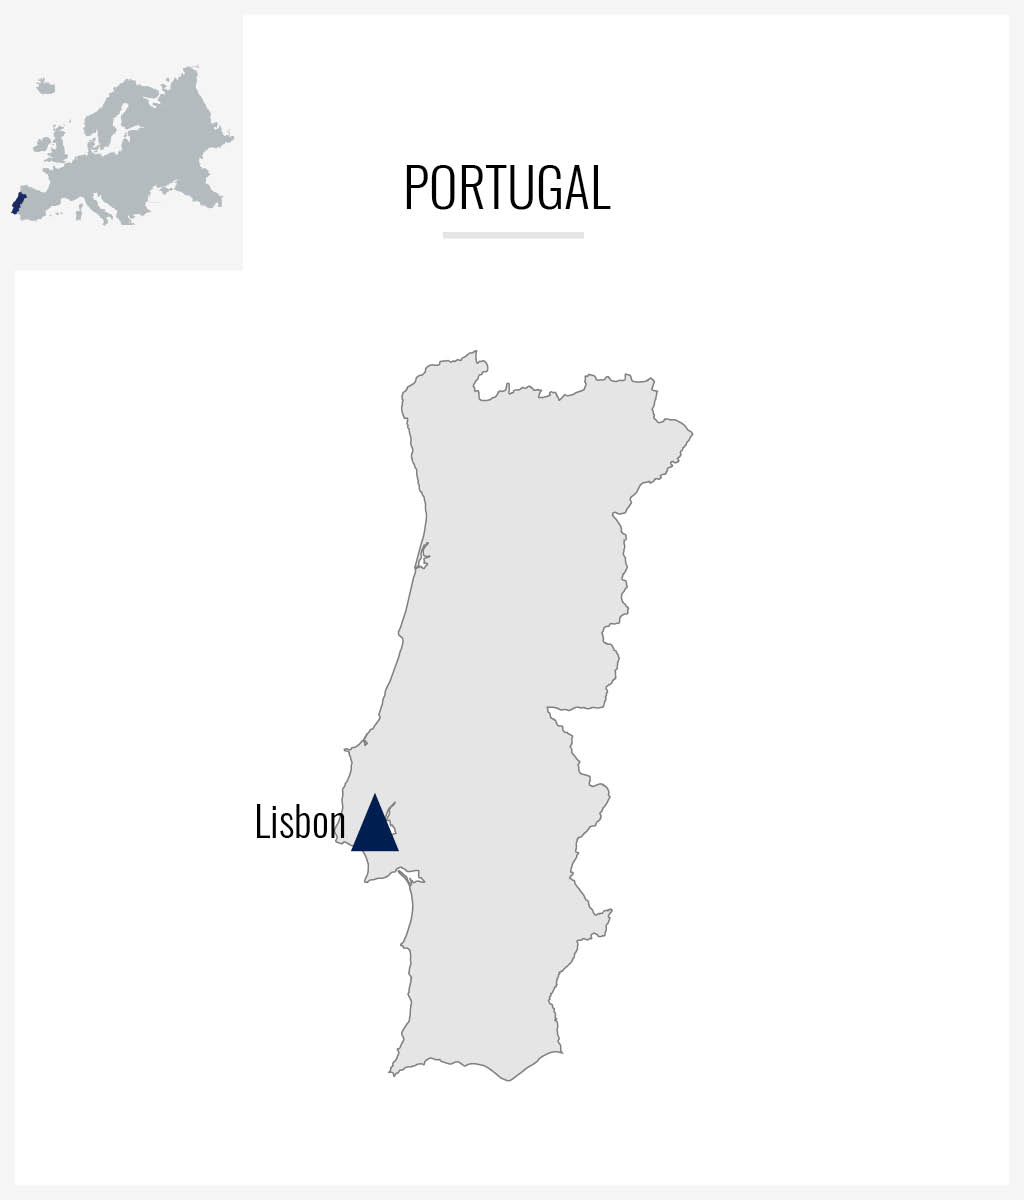 https://amt-sa.com/wp-content/uploads/2019/07/carte_portugal.jpg